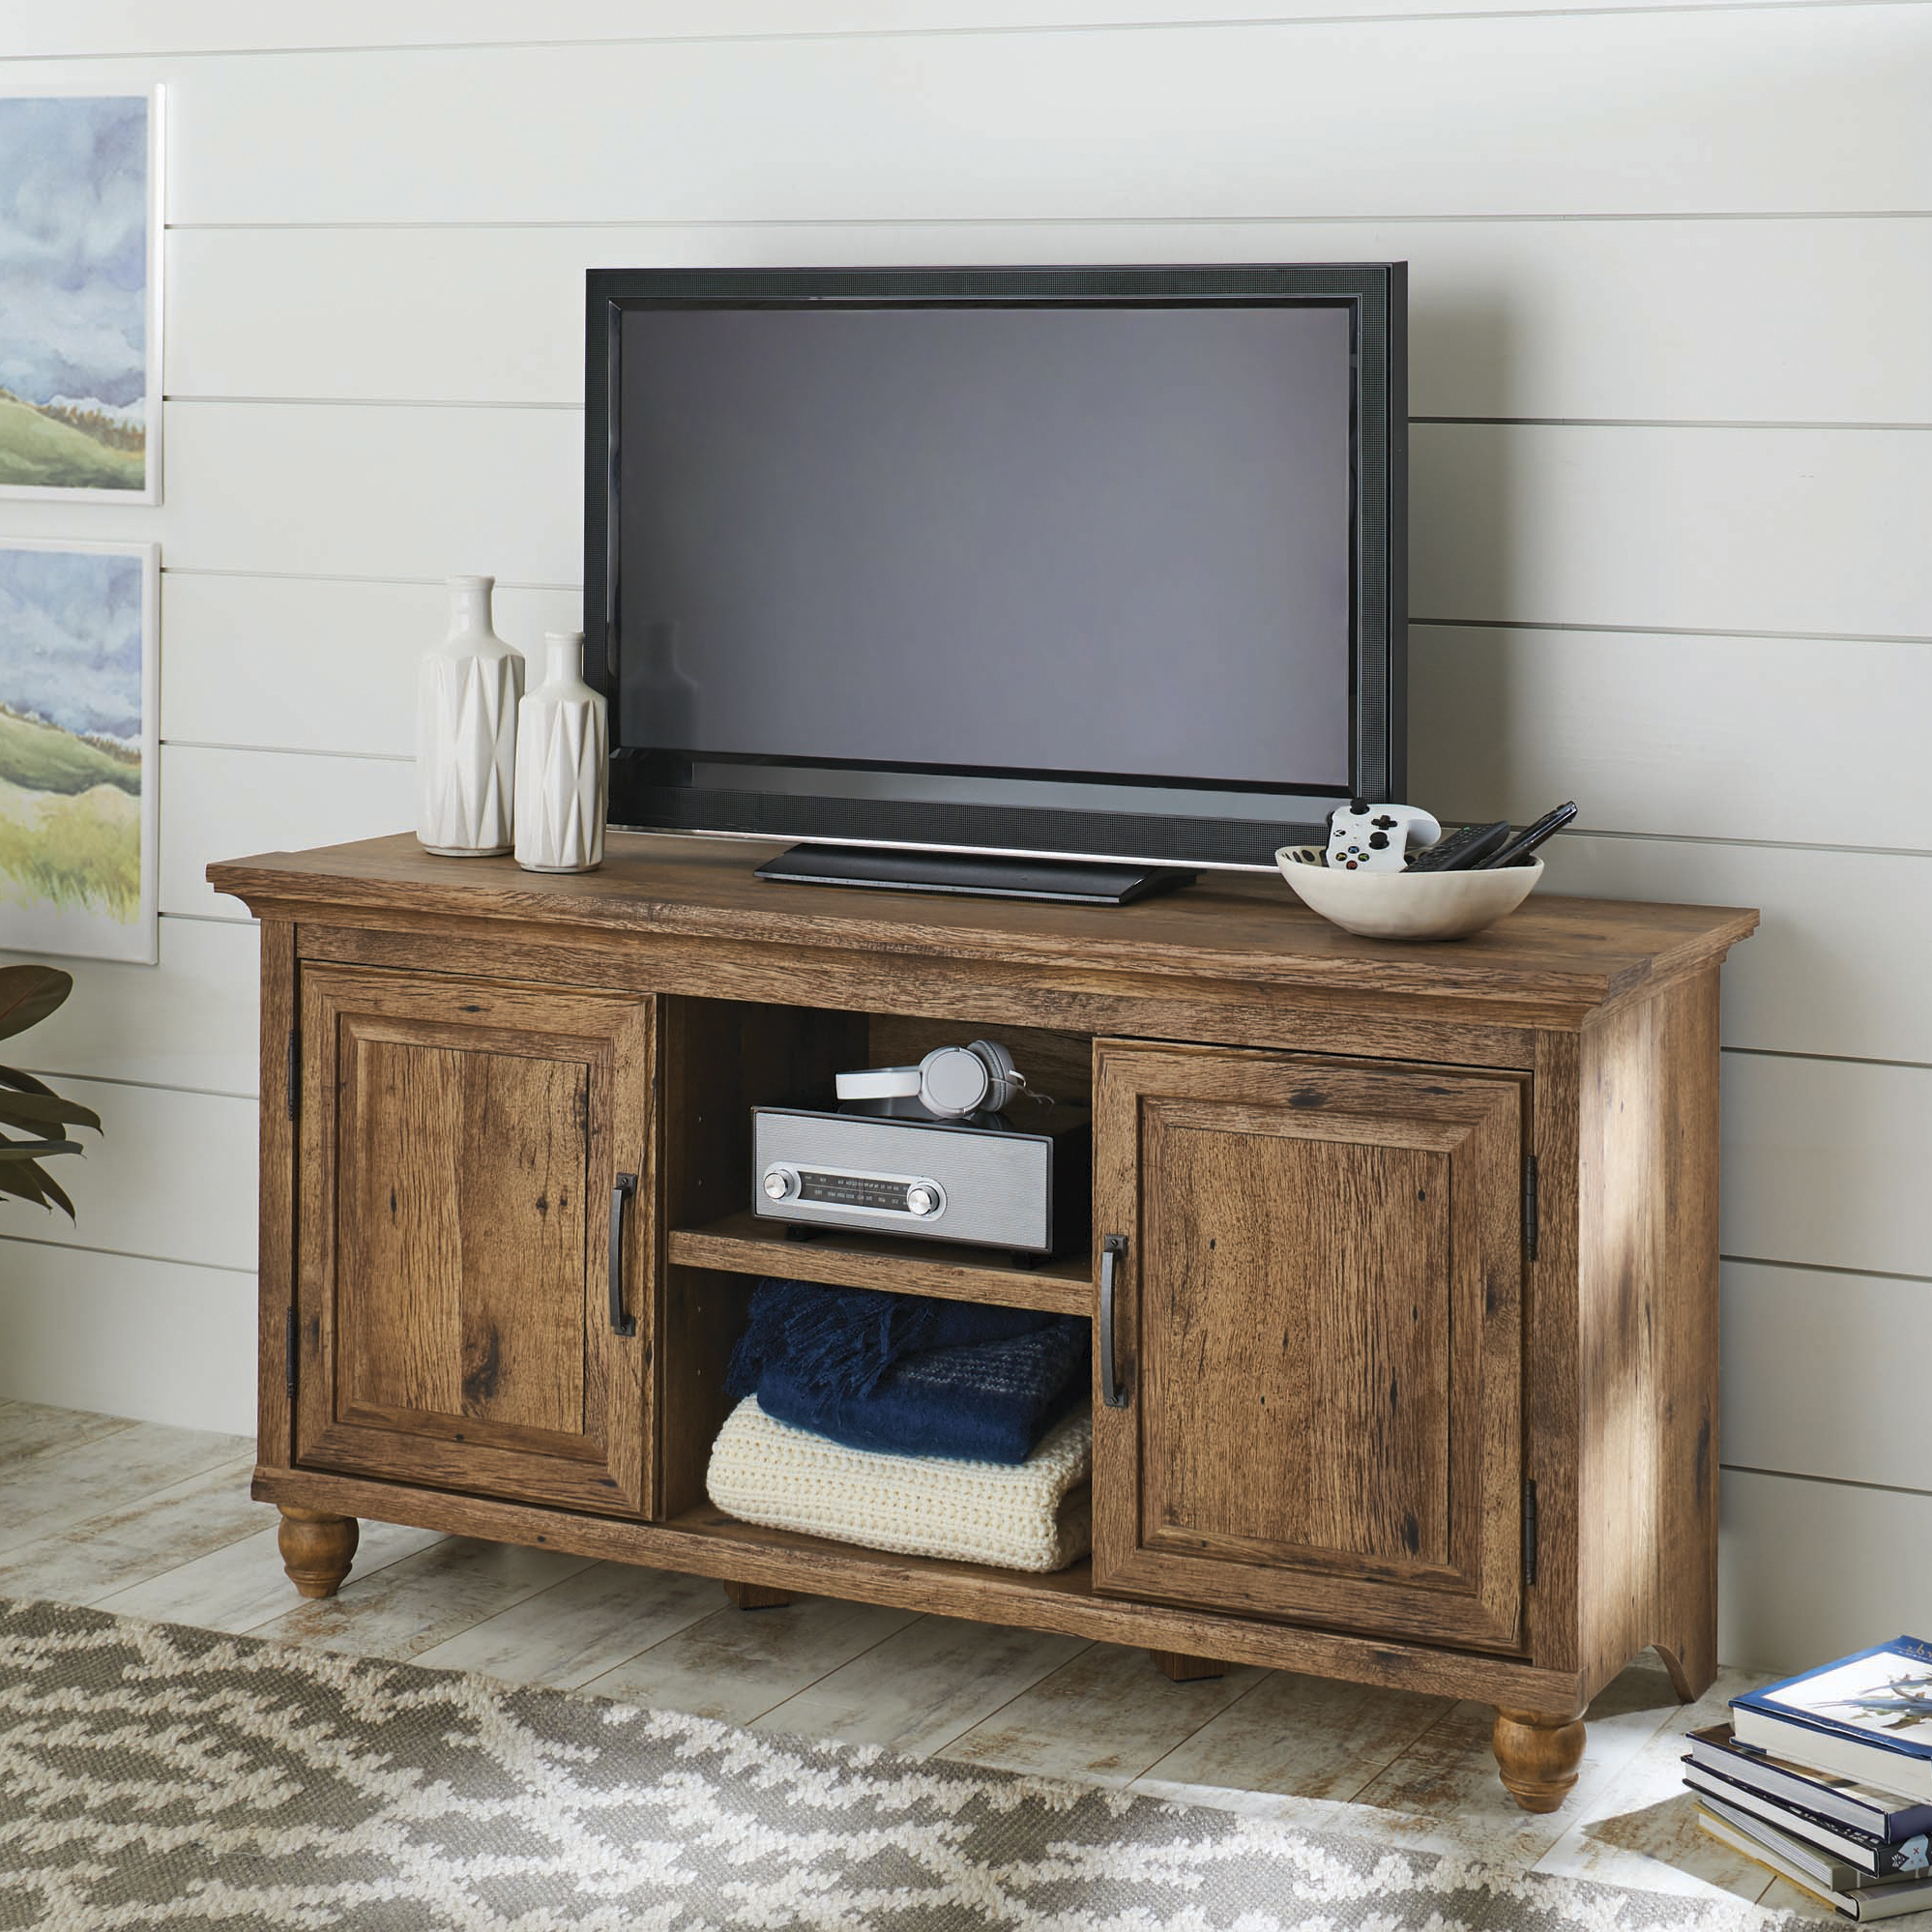 Better Homes And Gardens Crossmill Collection Tv Stand & Console Pertaining To Popular Tv Stands For Tube Tvs (View 12 of 20)